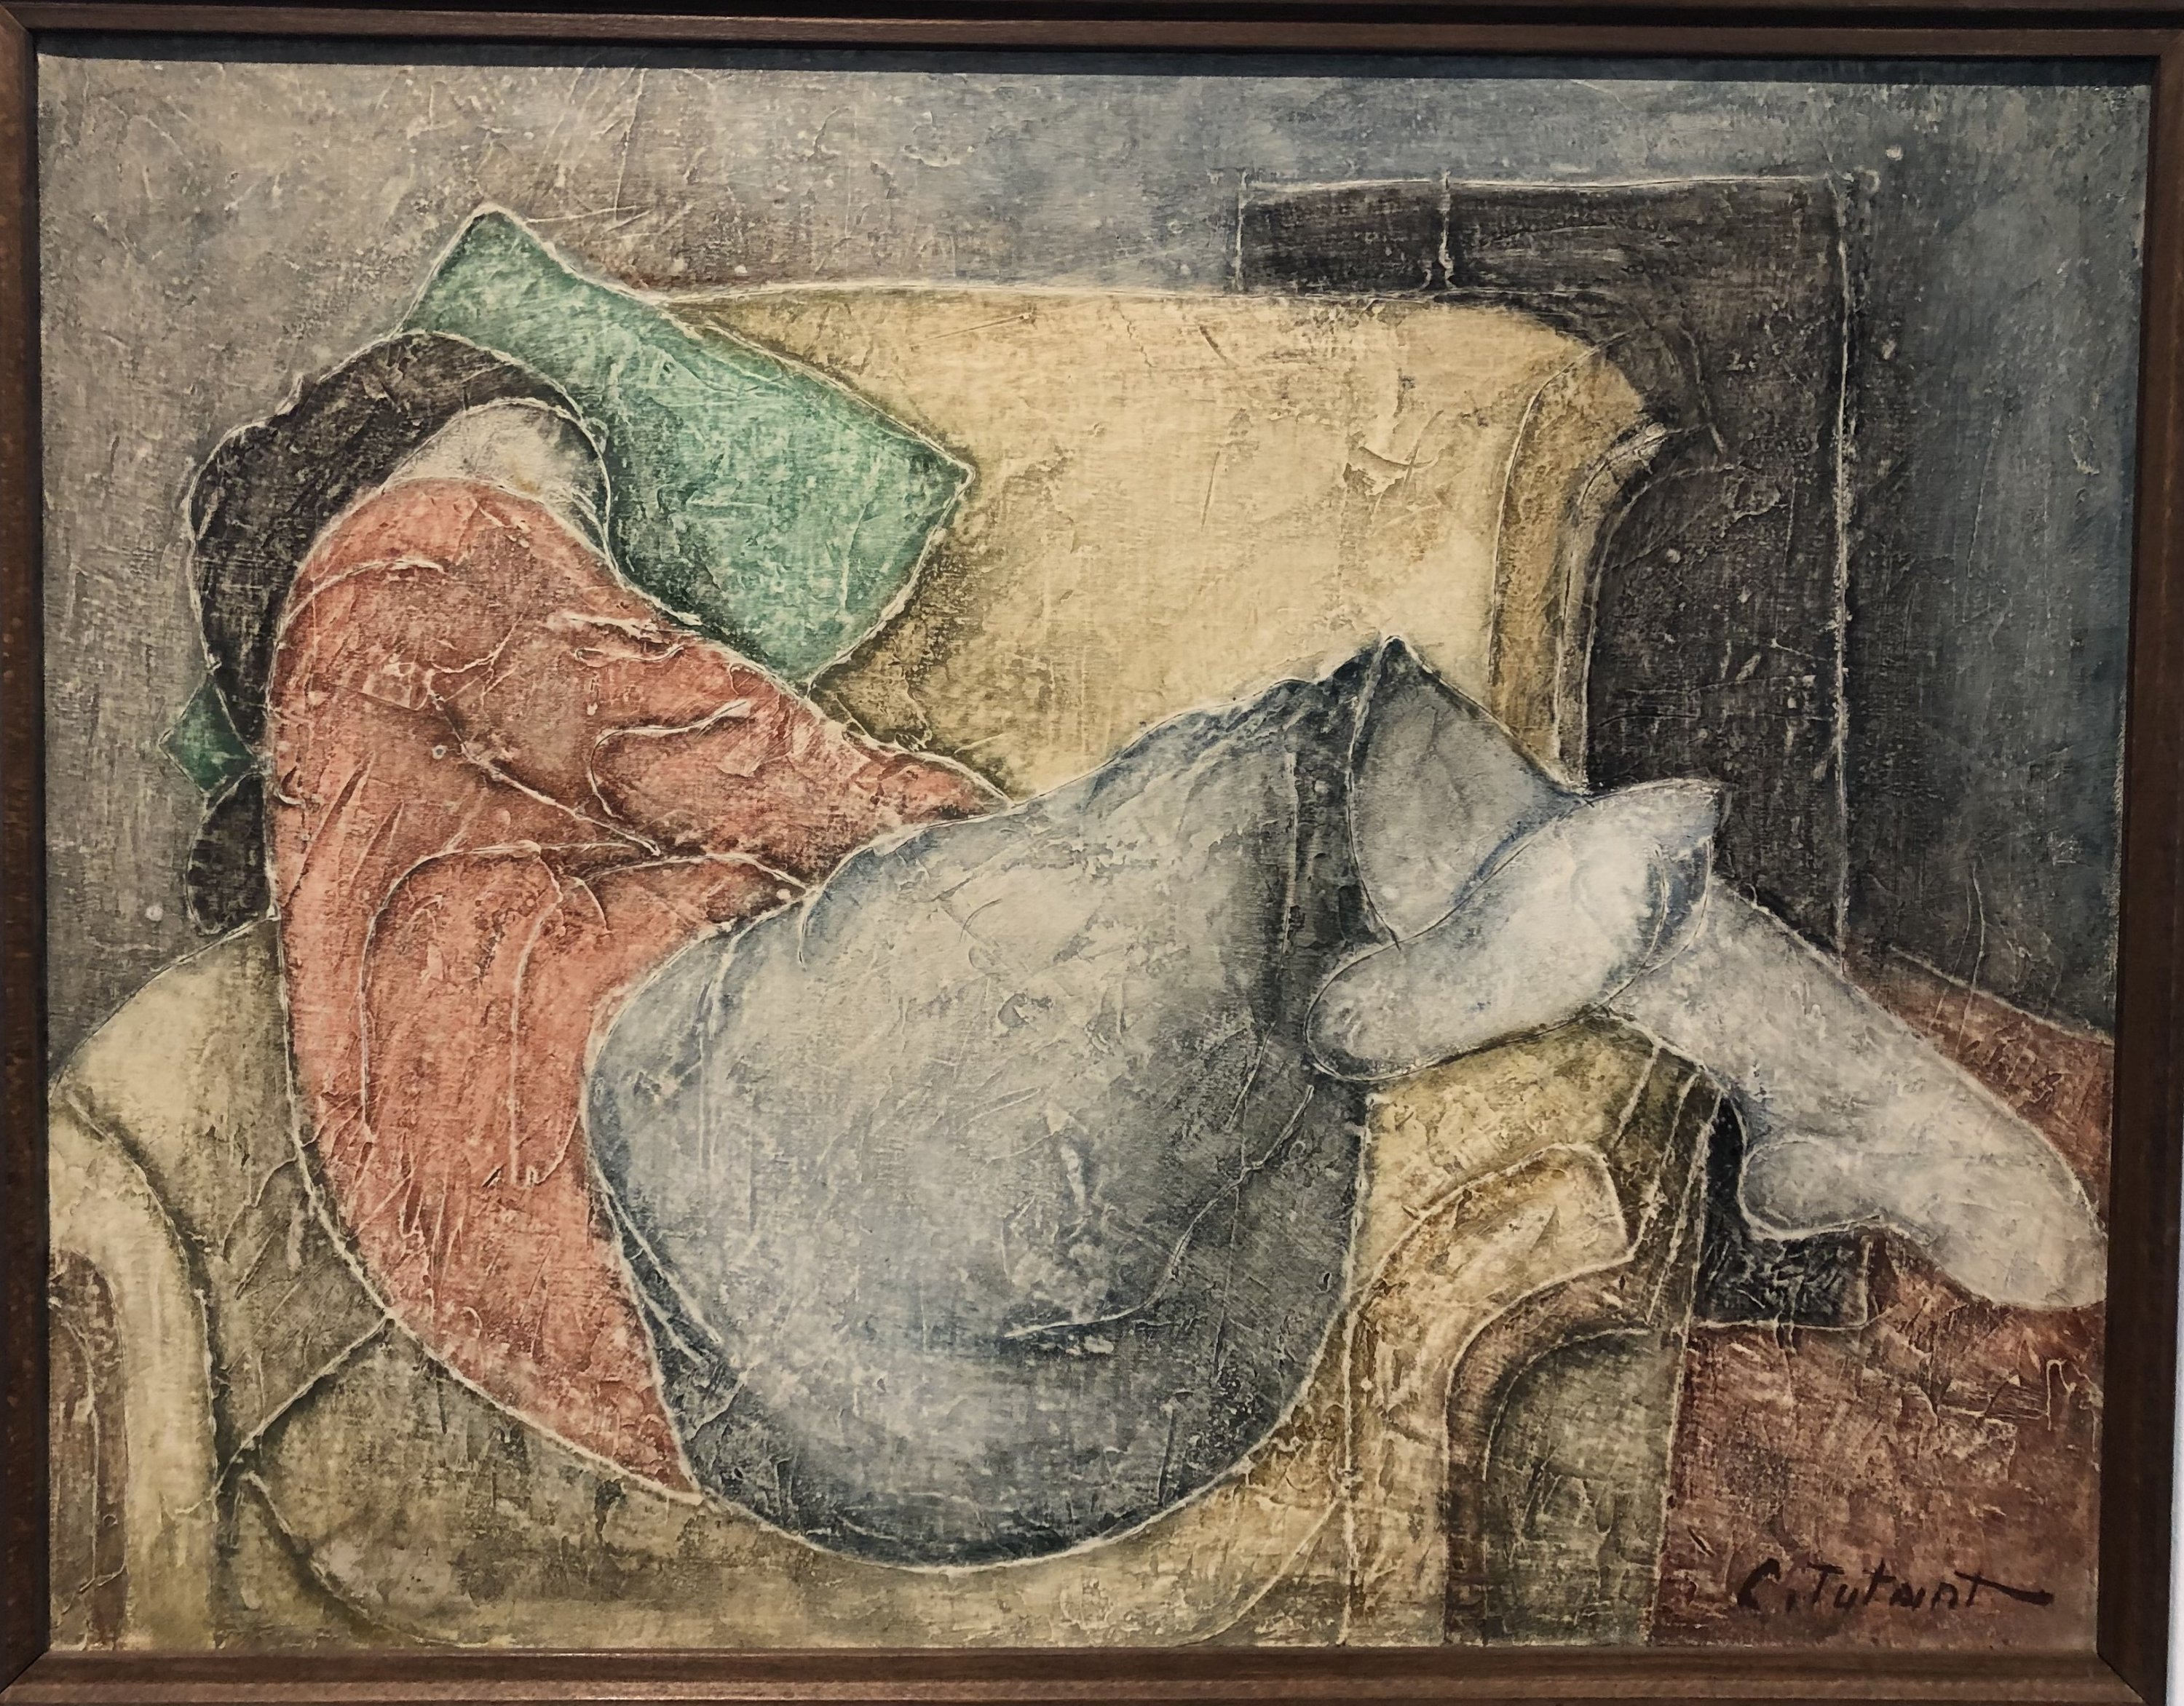 Celal Tutant 'On the Sofa,' 1986, oil on canvas 64 by 50 centimeters.